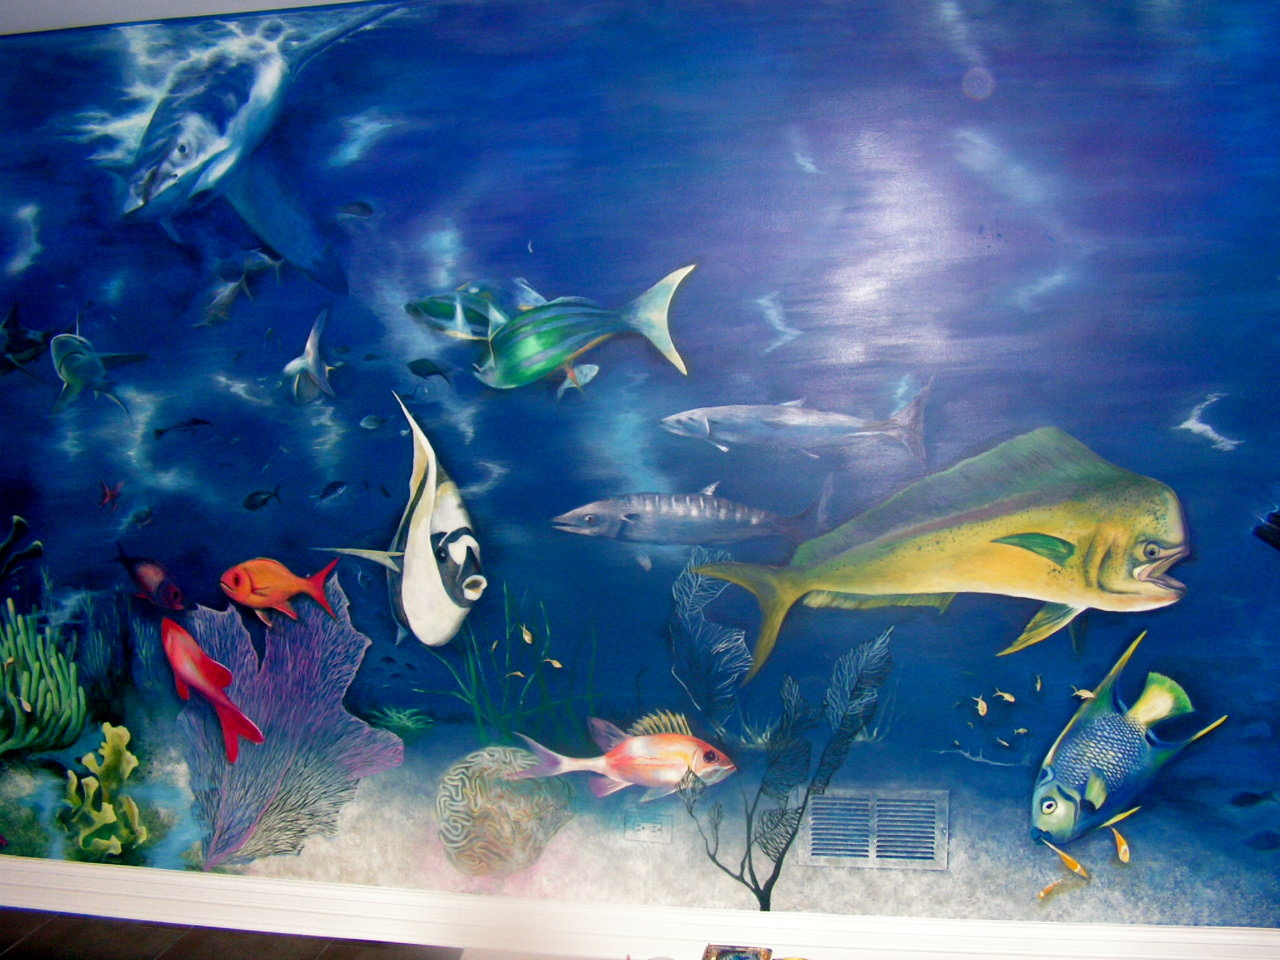 Under ocean life on the wall